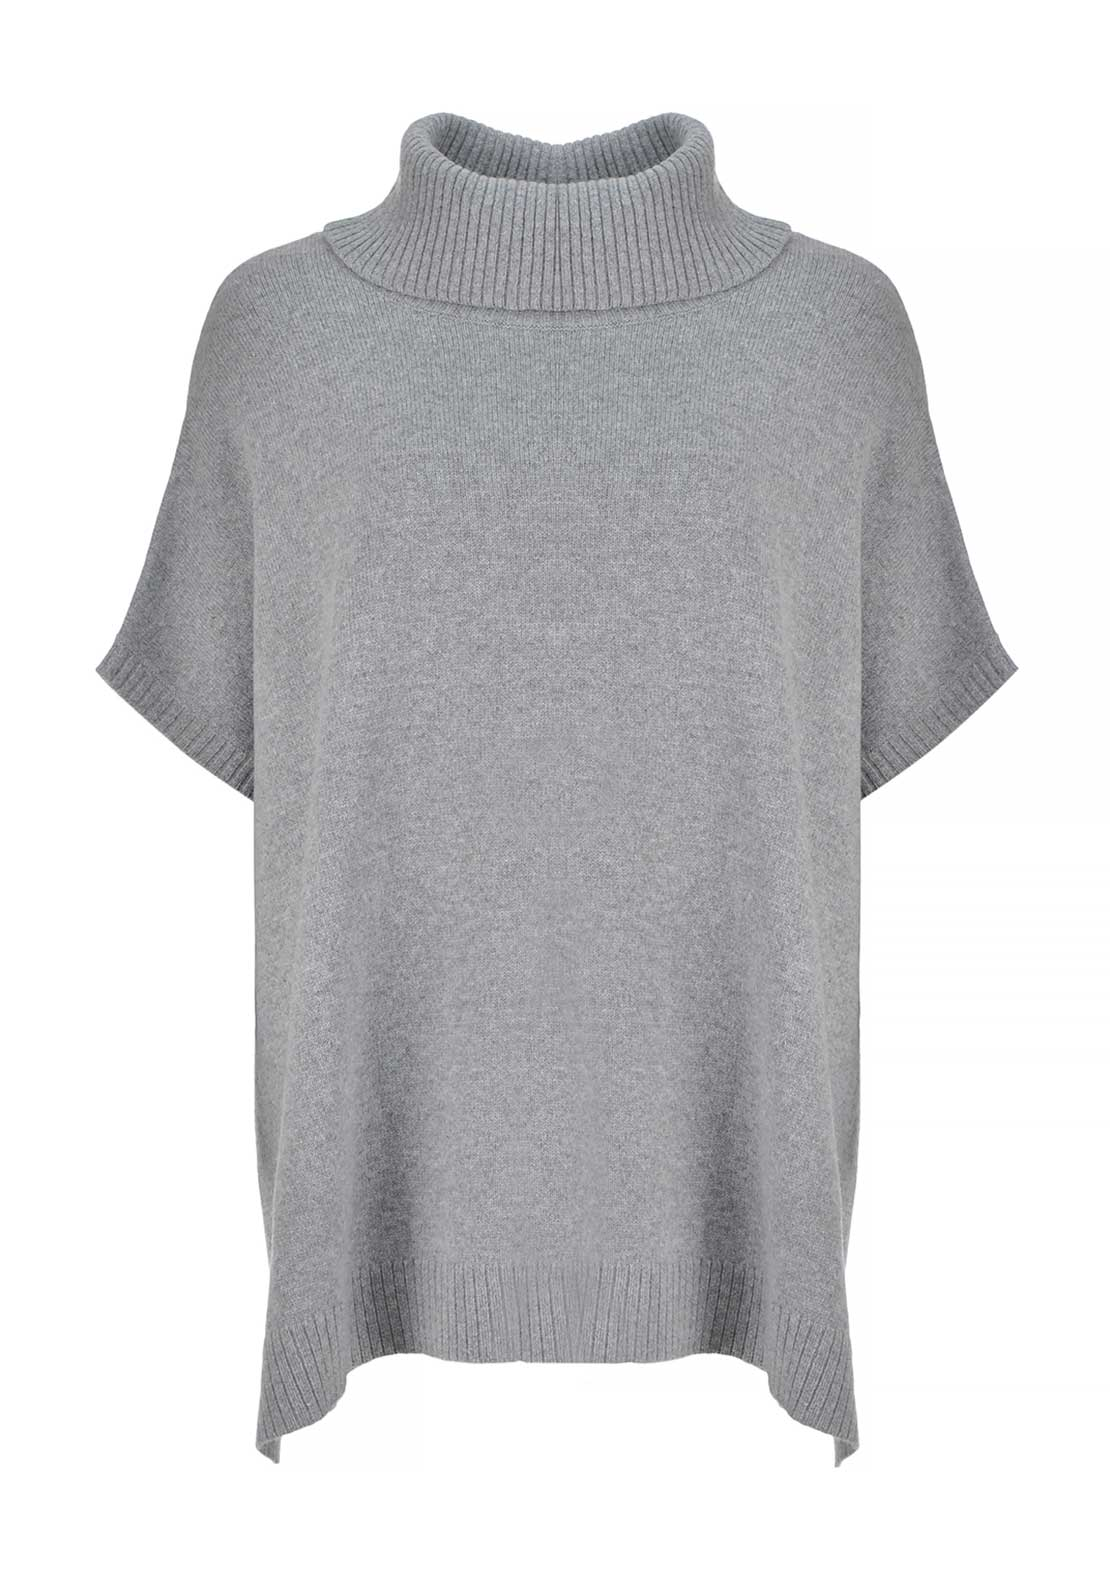 Gerry Weber Wool and Cotton Blend Oversize Poncho Sweater Jumper, Grey